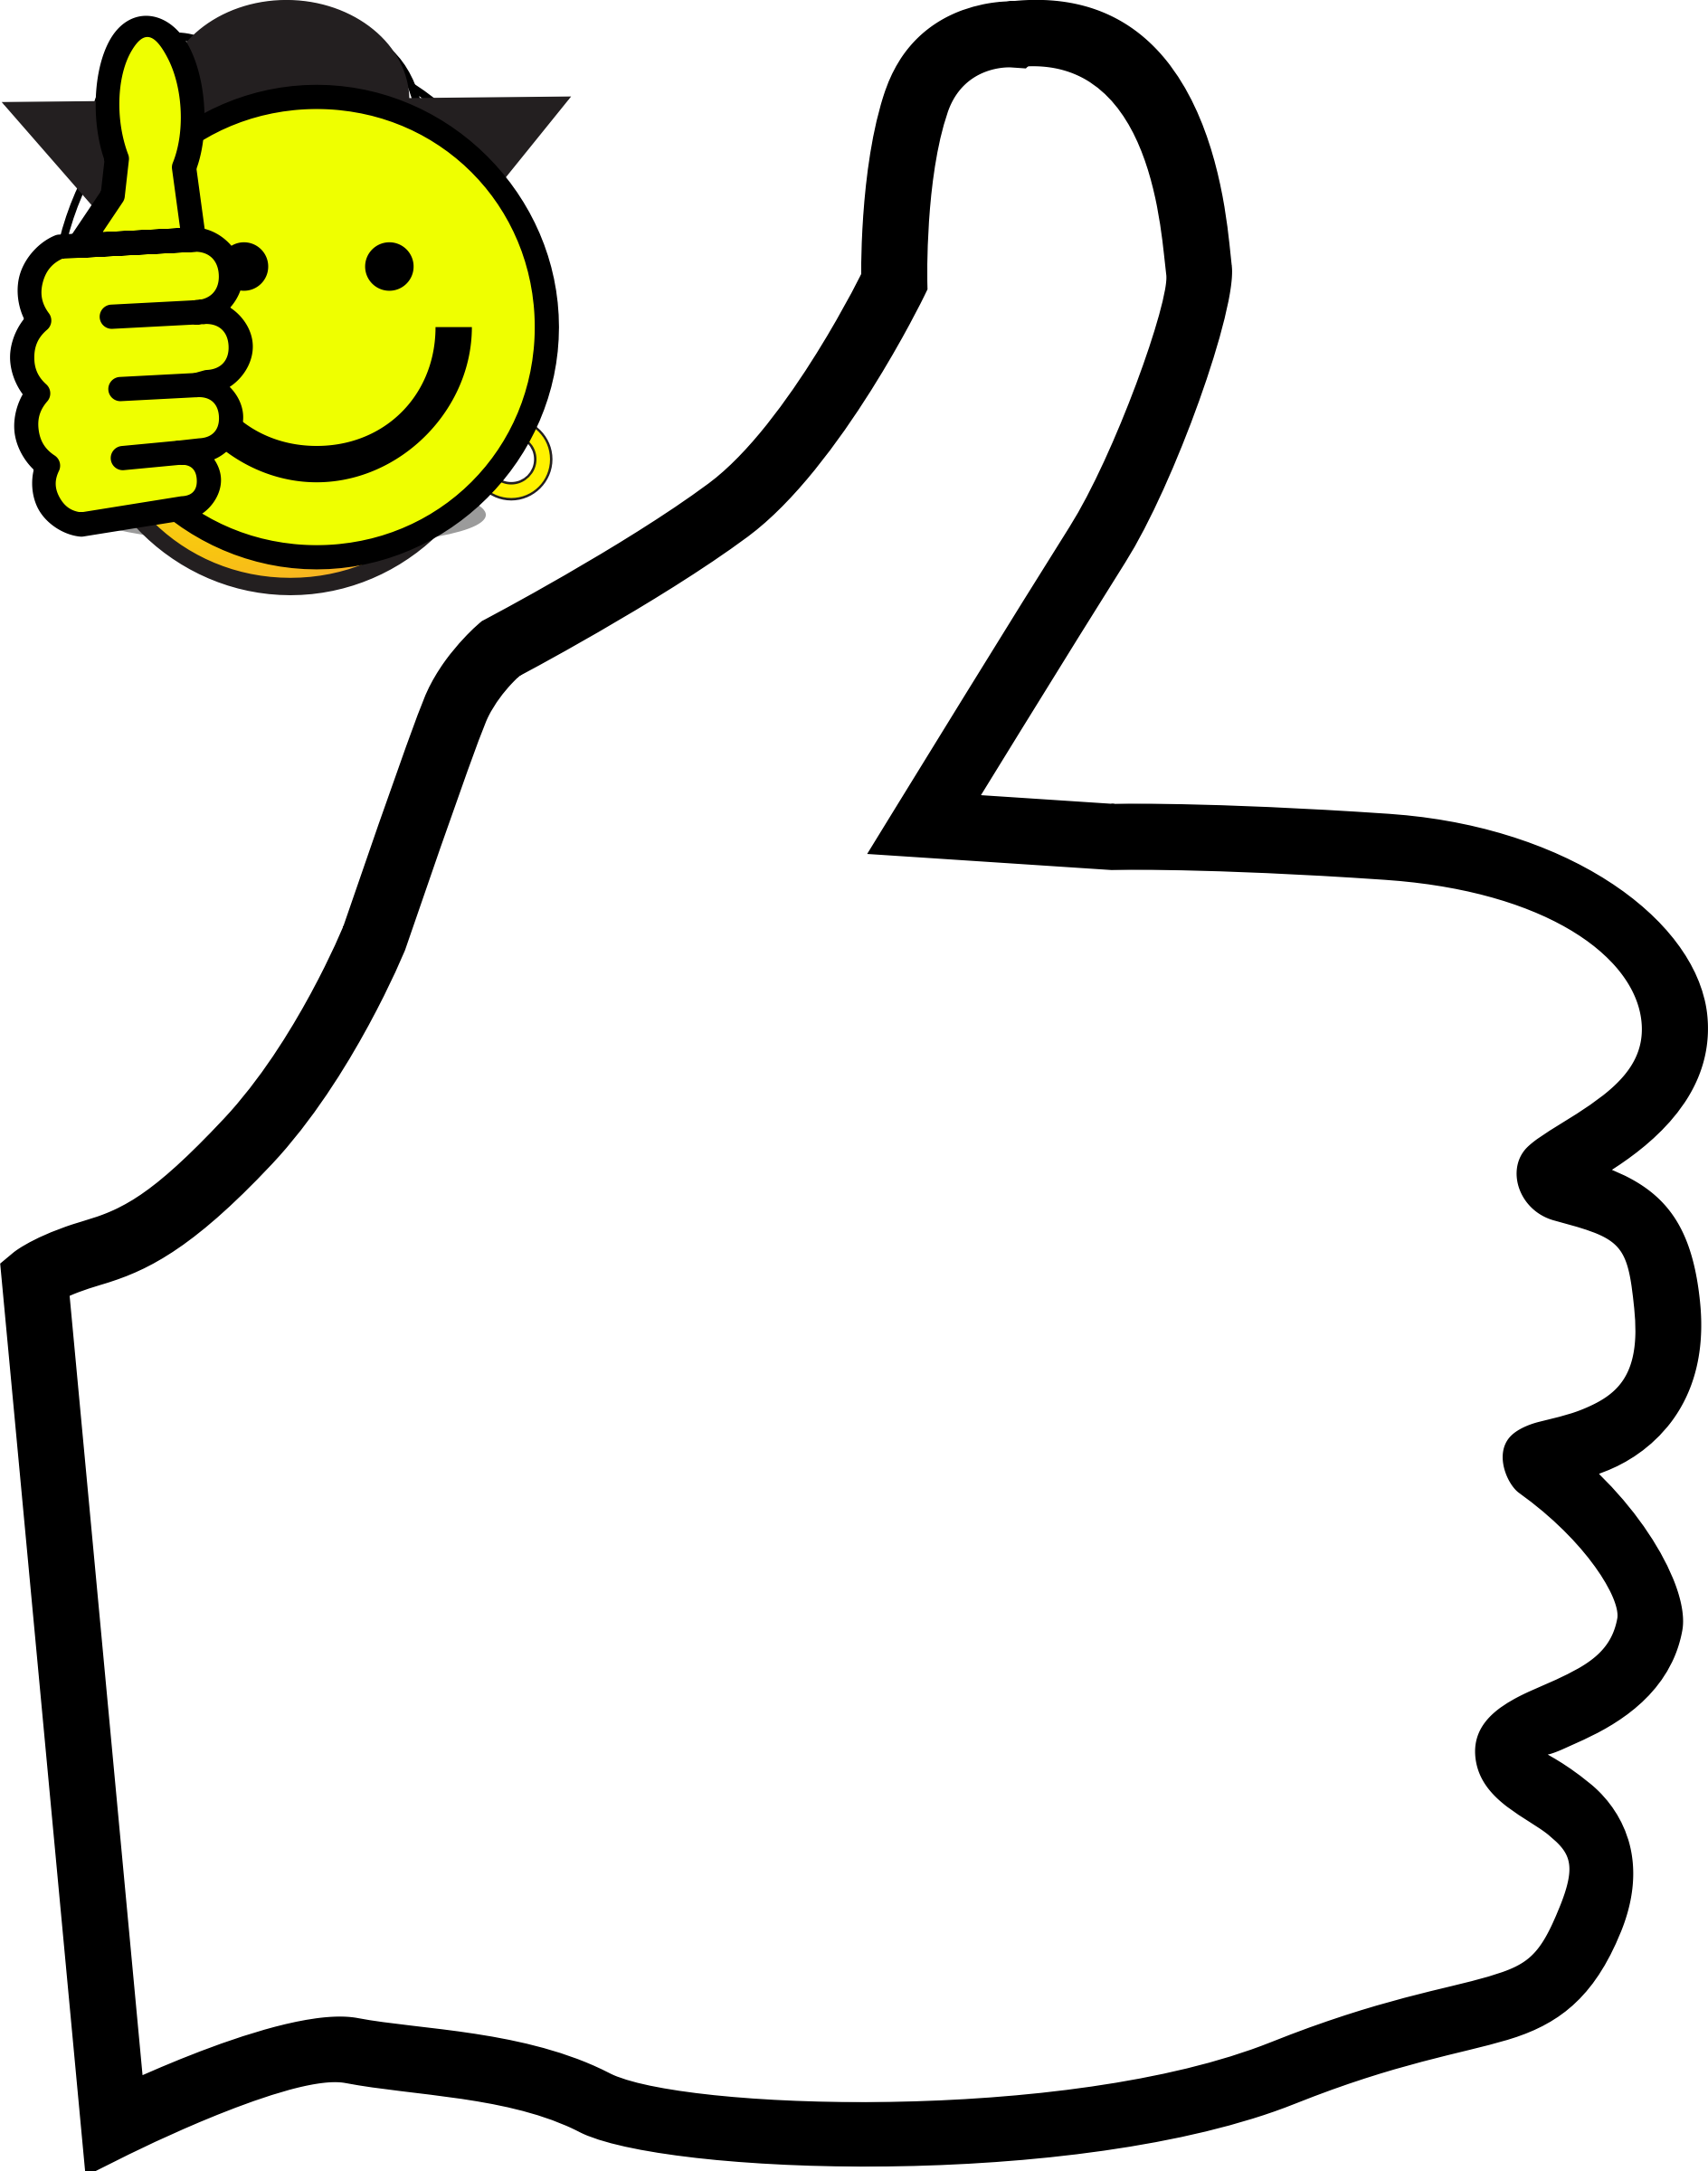 Thumbs up smiley clipart picture freeuse download Clipart - Thumb up with smiley picture freeuse download